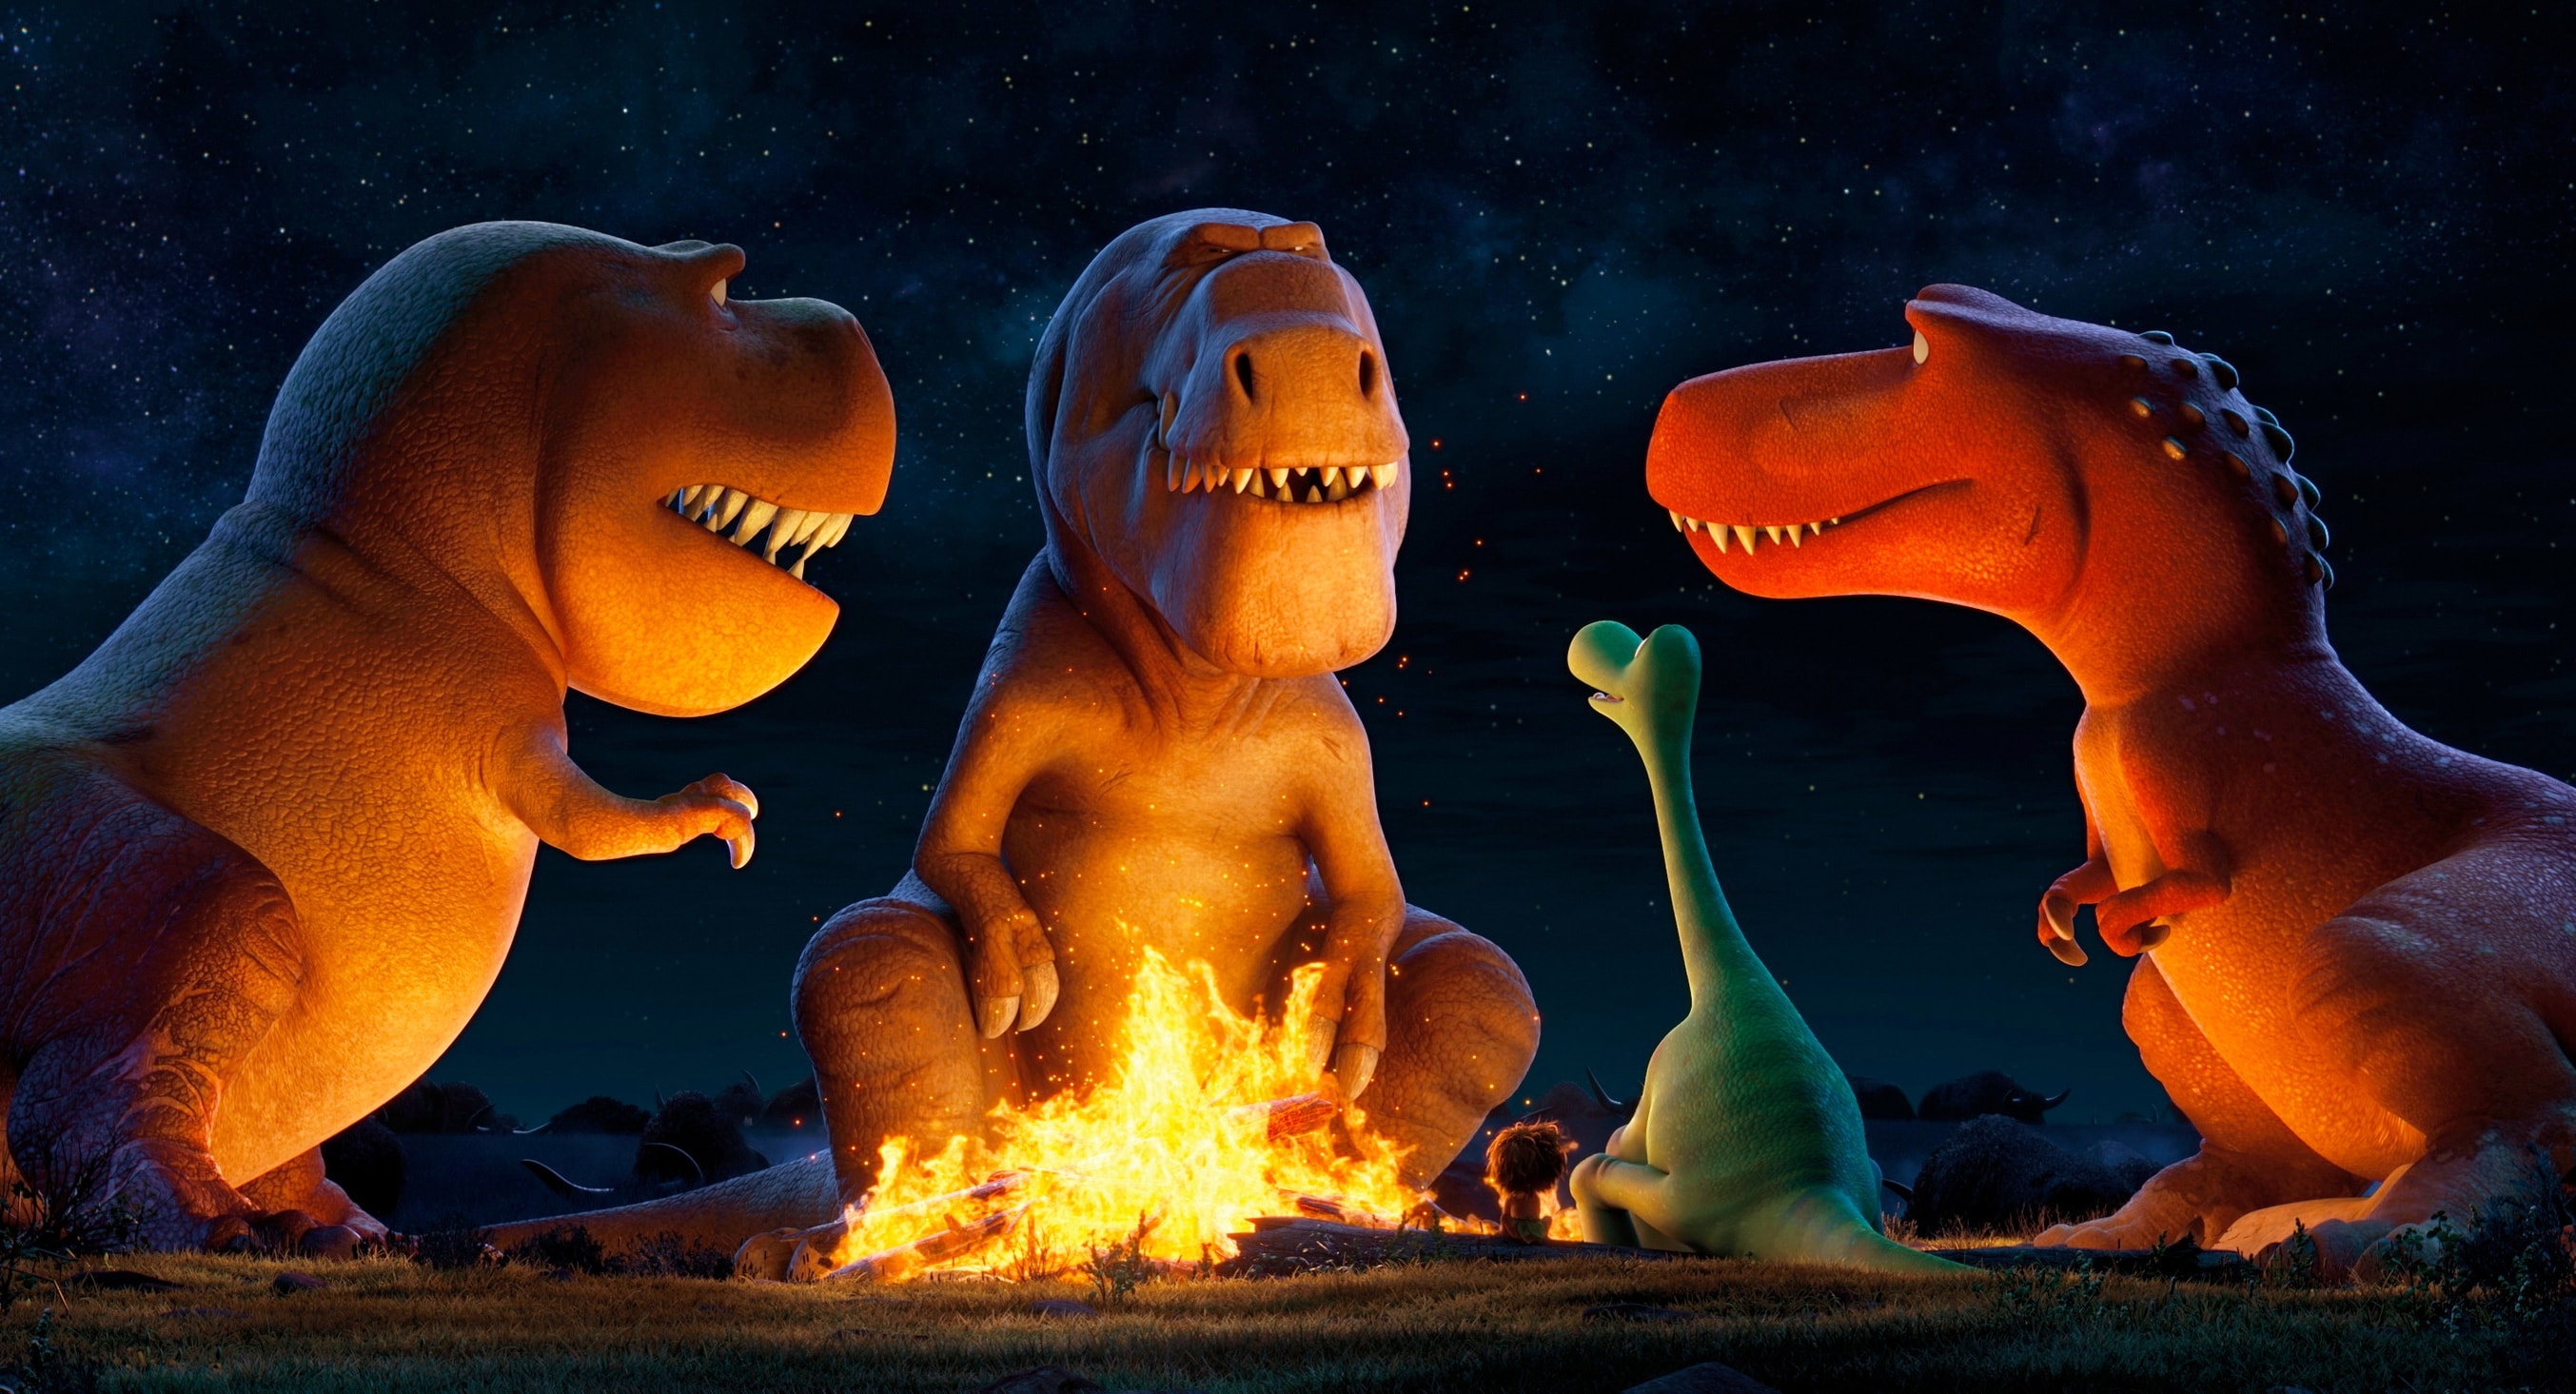 The Good Dinosaur HQ Wallpapers The Good Dinosaur Desktop Wallpapers